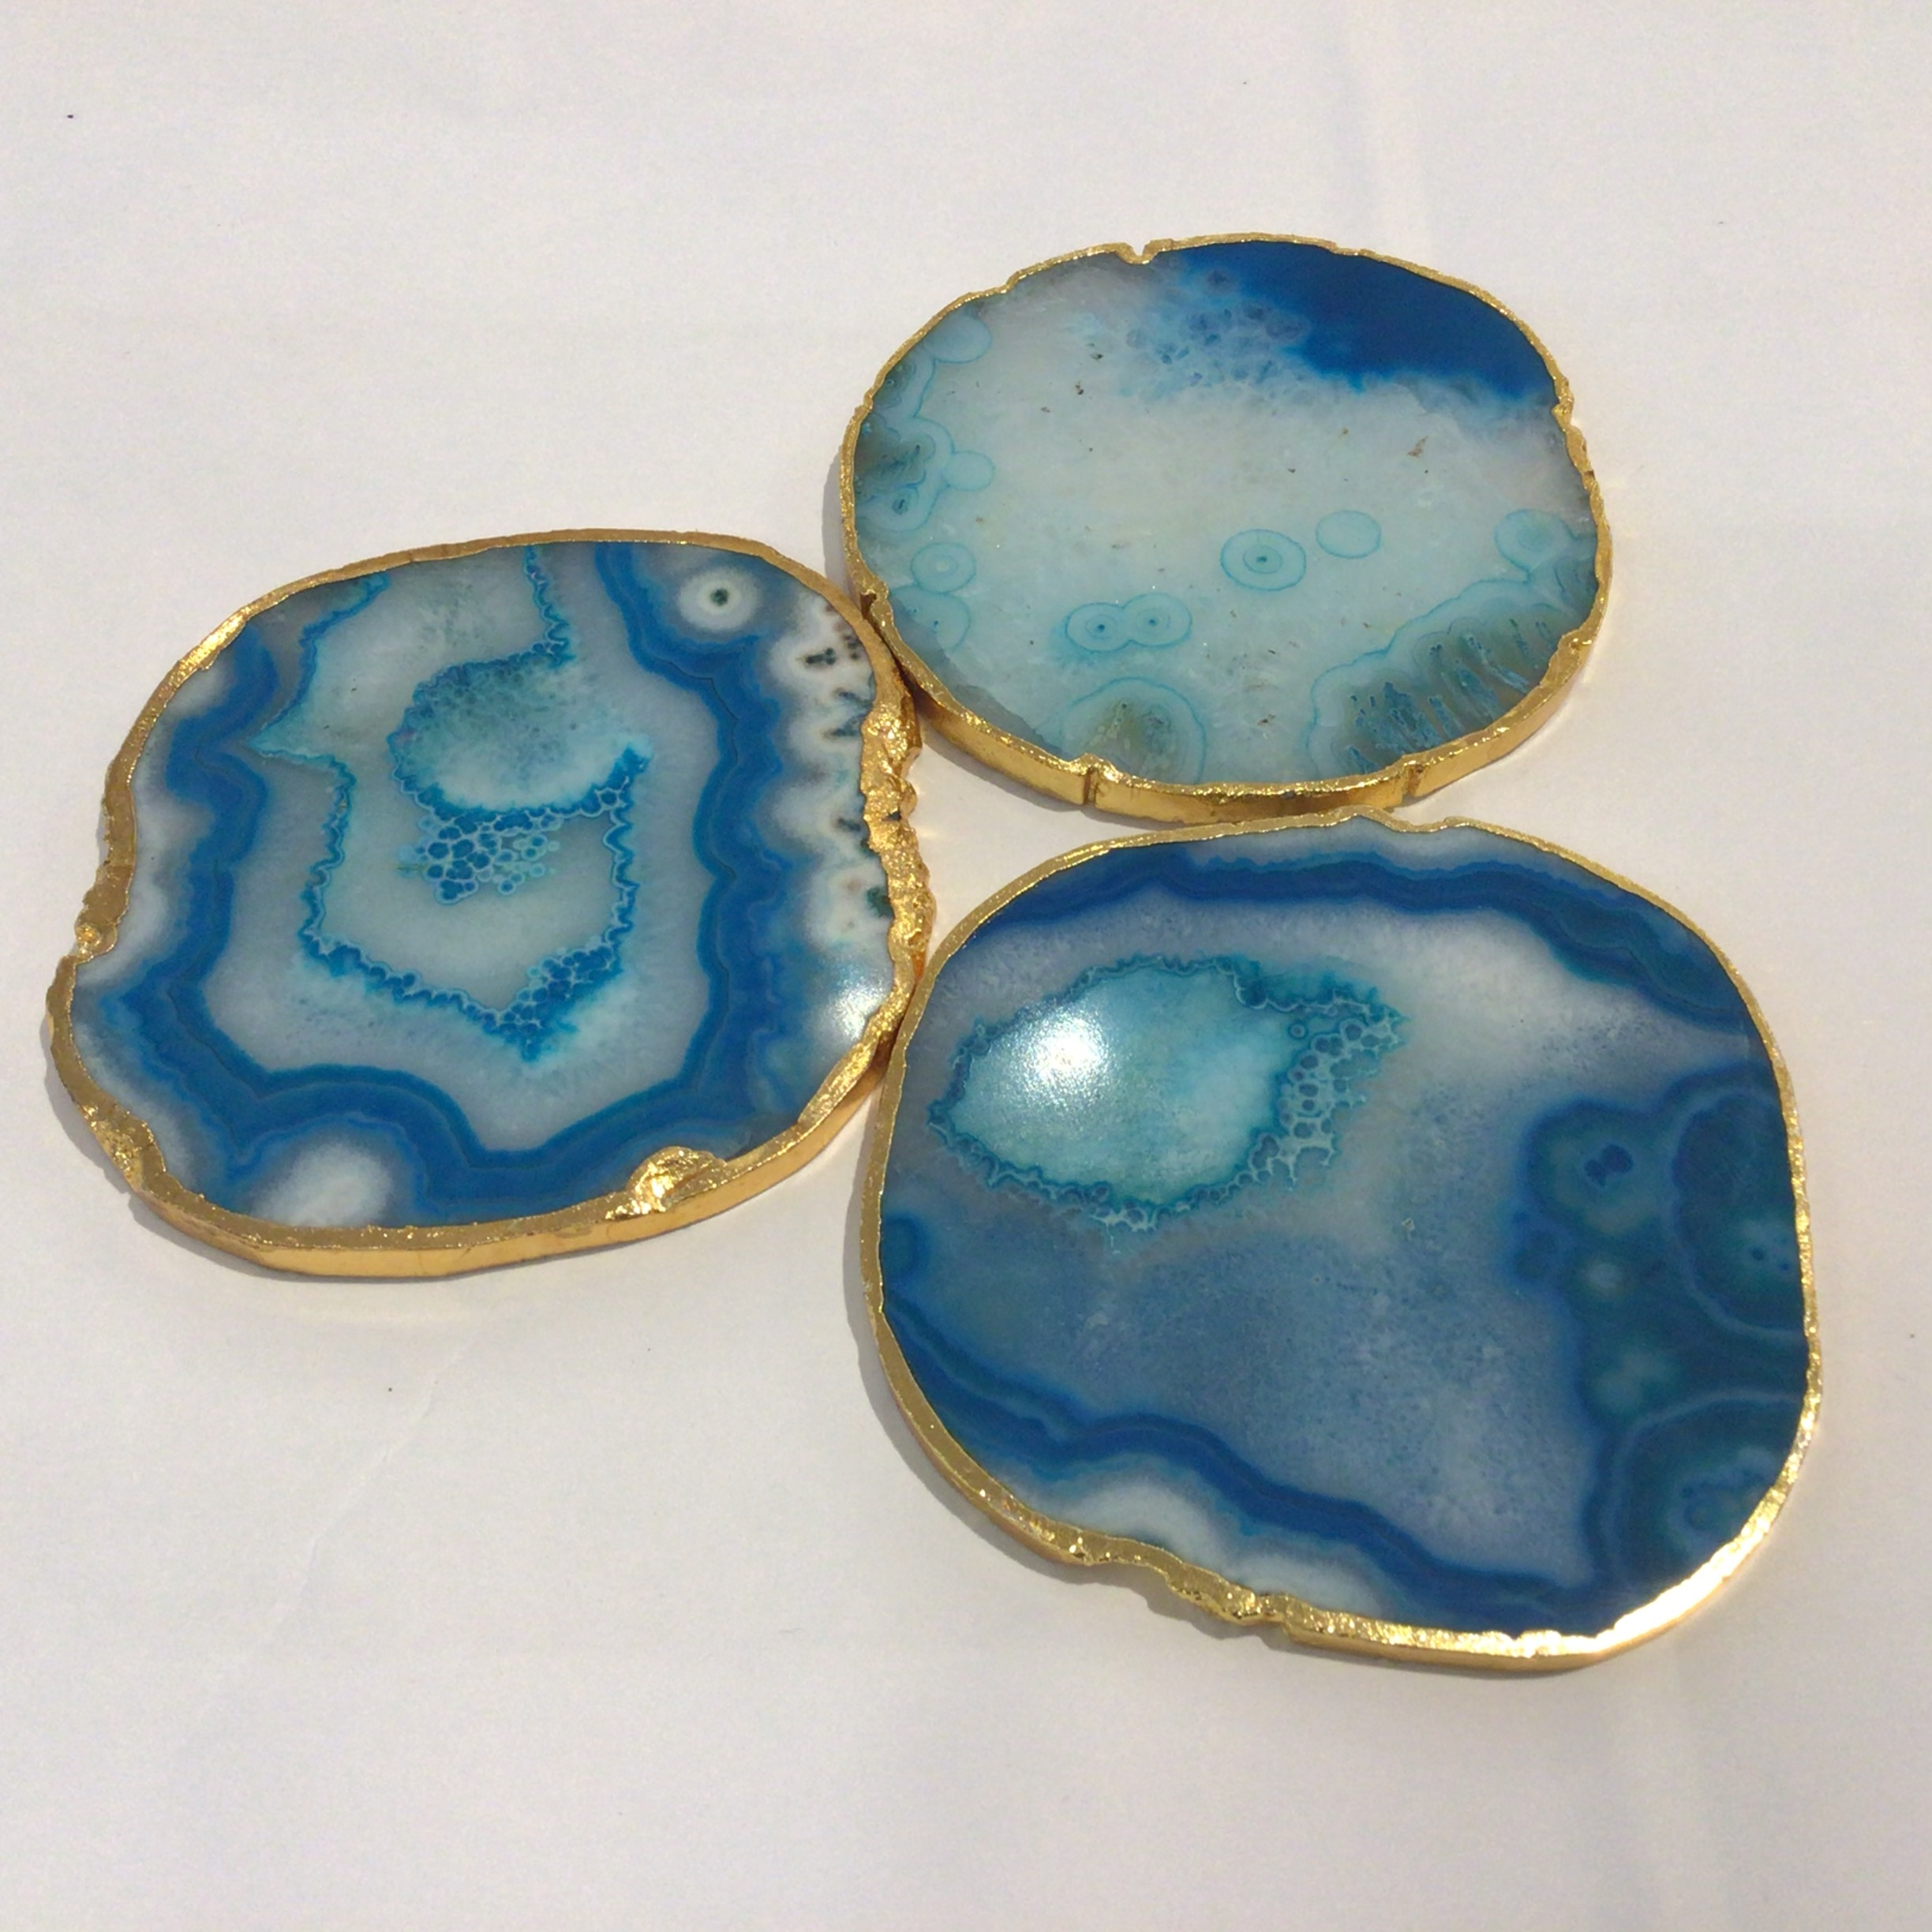 Agate Coaster - Blue